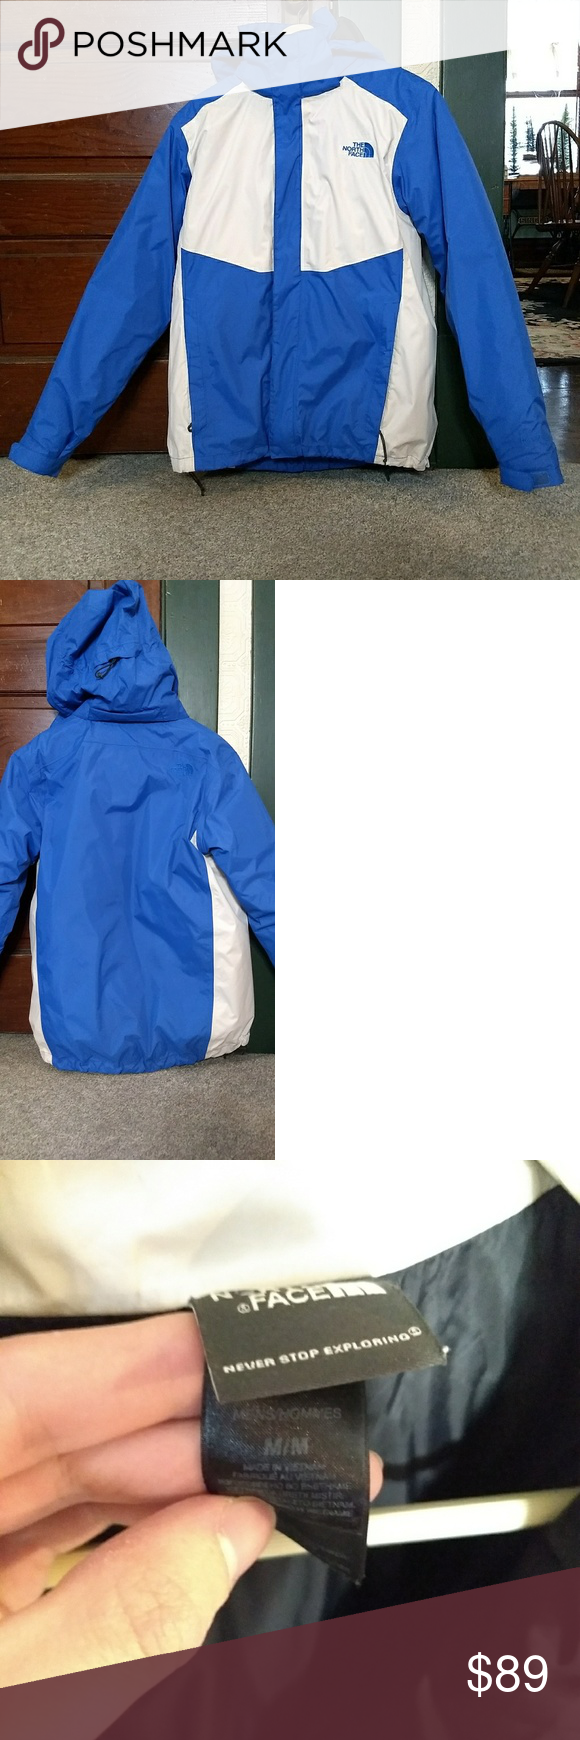 The North Face Men S 2 In 1 Hyvent Coat North Face Mens The North Face North Face Jacket [ 1740 x 580 Pixel ]